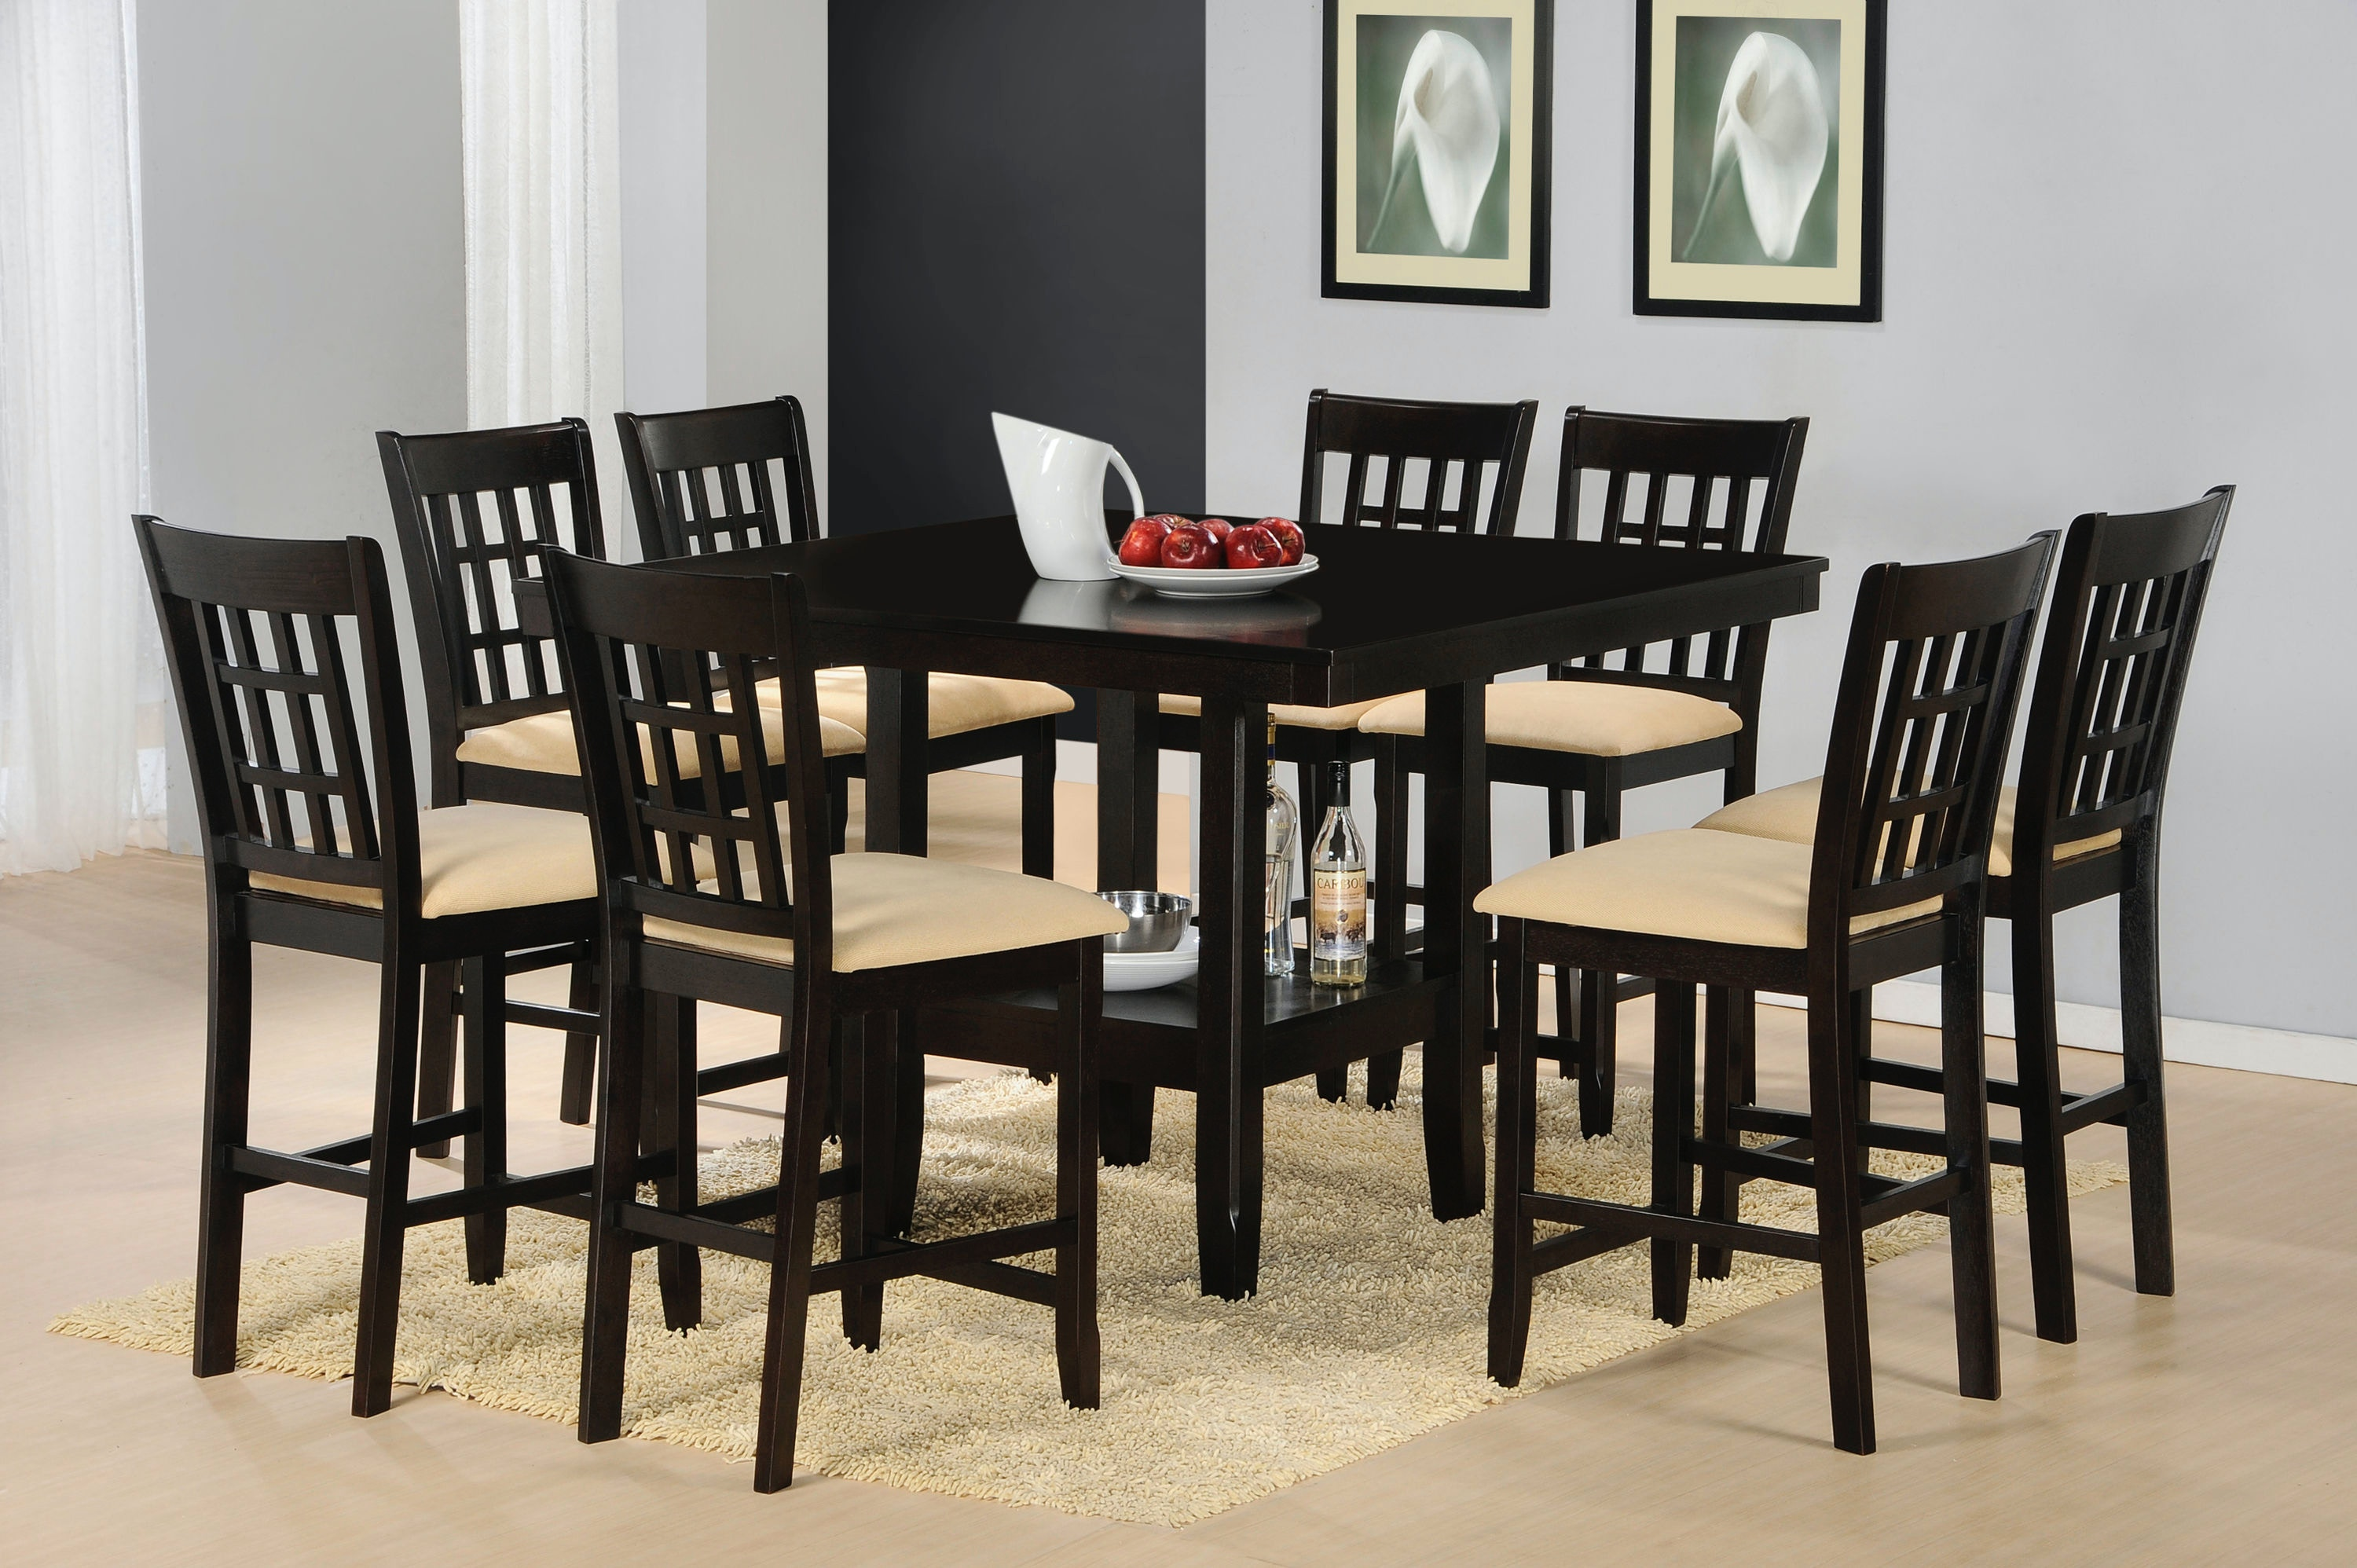 Hillsdale Furniture Tabacon 9 Piece Dining Set 4155DTBGS9